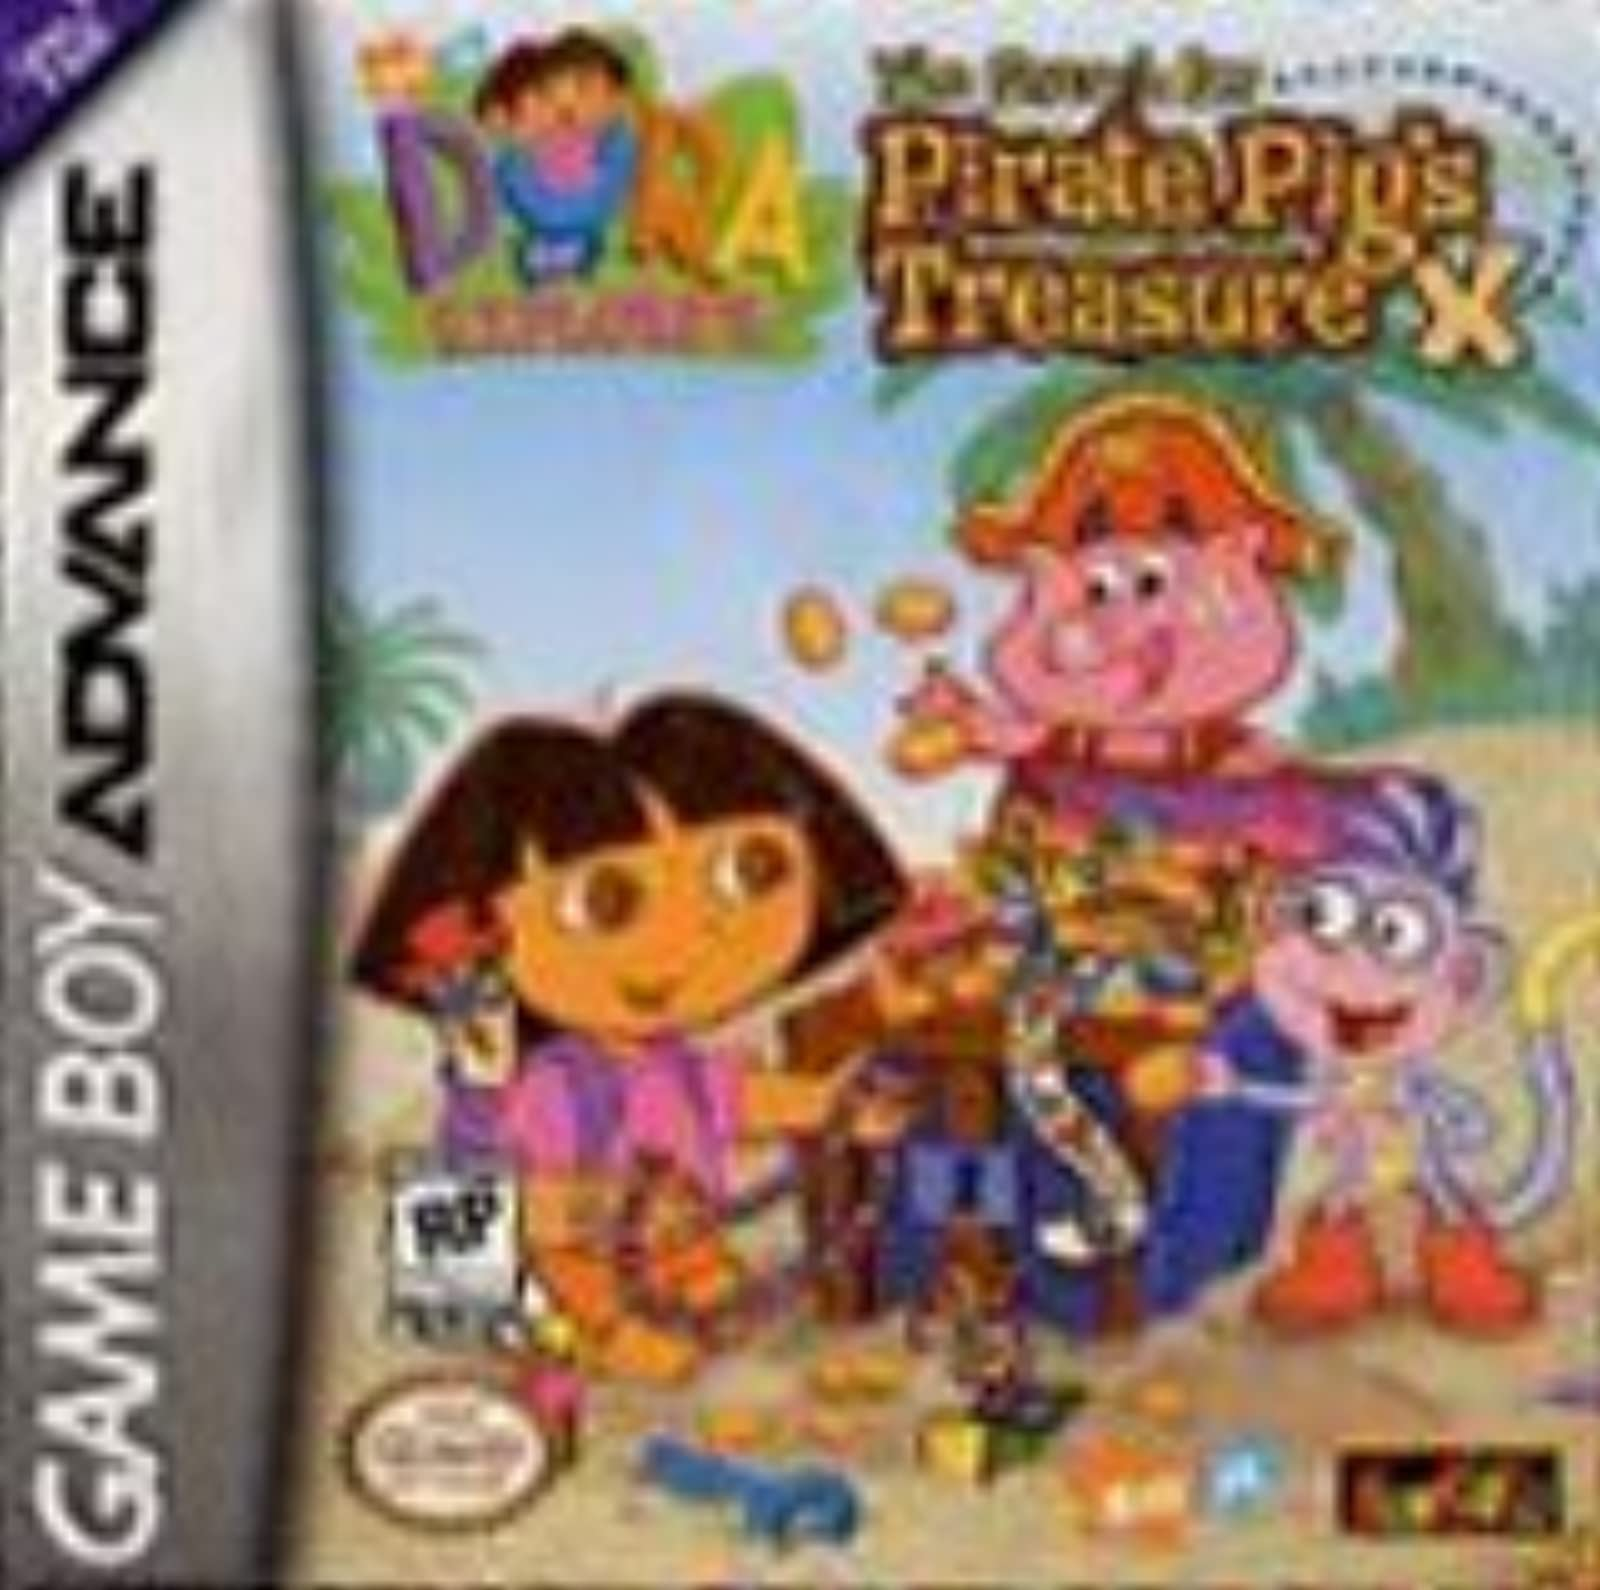 Dora The Explorer The Search For Pirate Pig's Treasure For GBA Gameboy